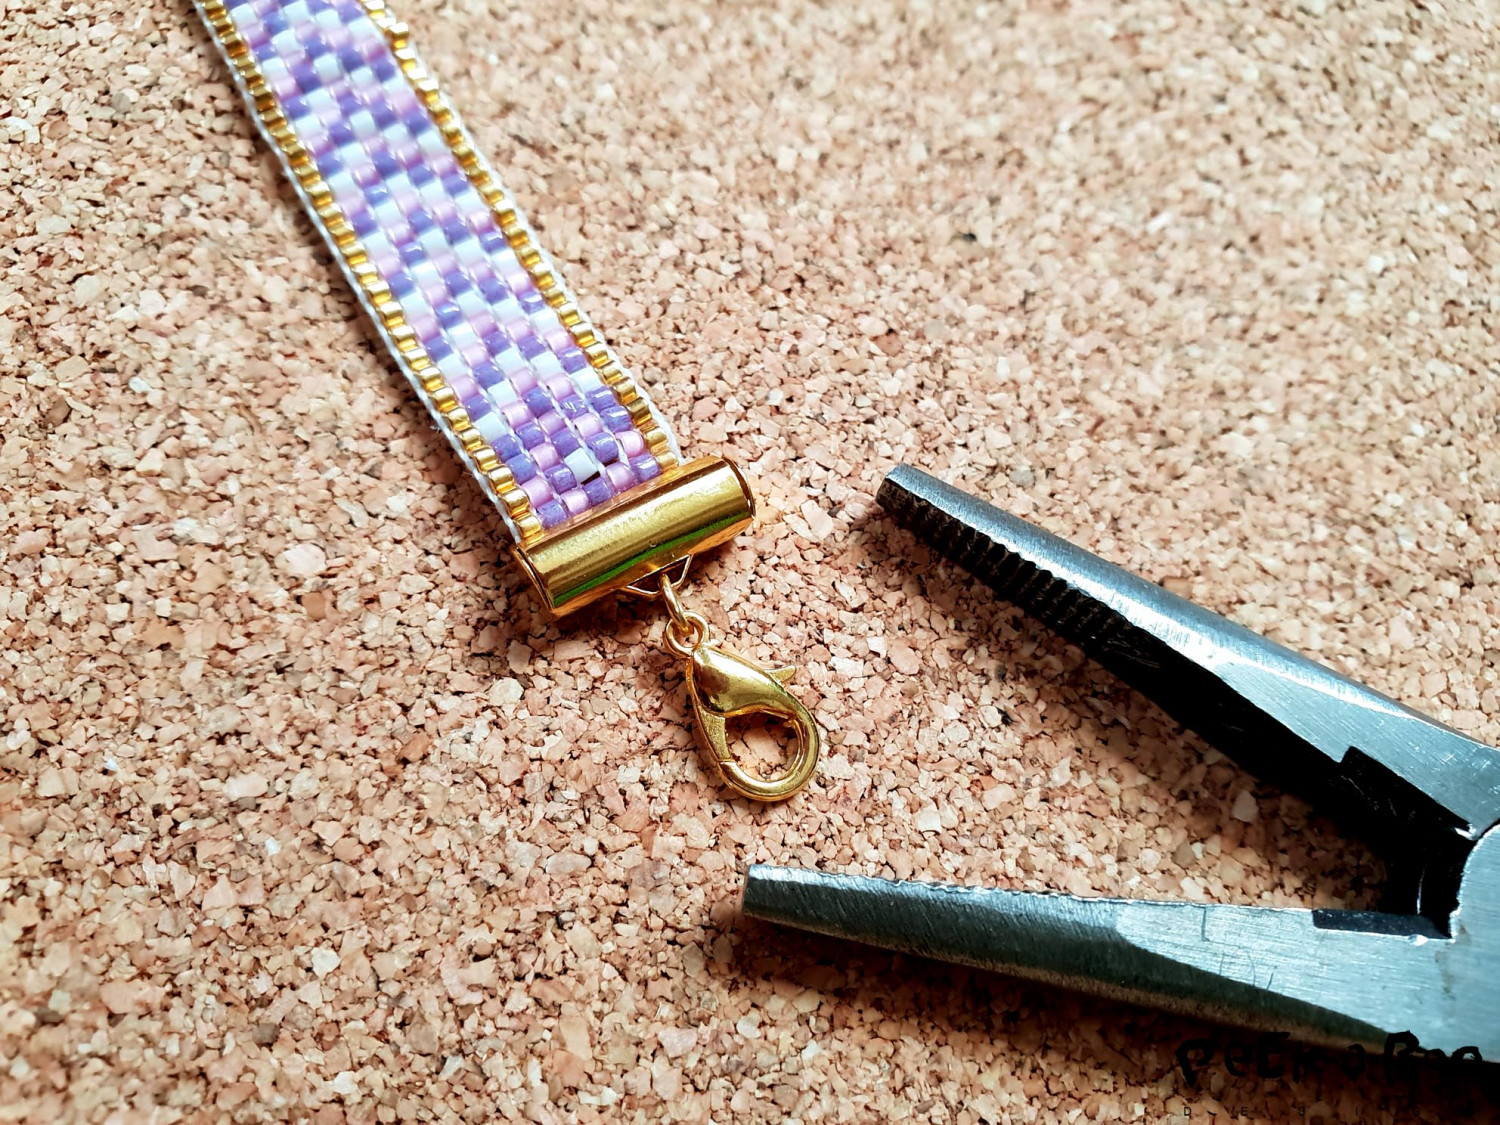 Now close both ends and mount a snap hook at one end. Before the snap hook can be an advantage to put two intermediaries, ie two rings. For this work you need two small pliers.